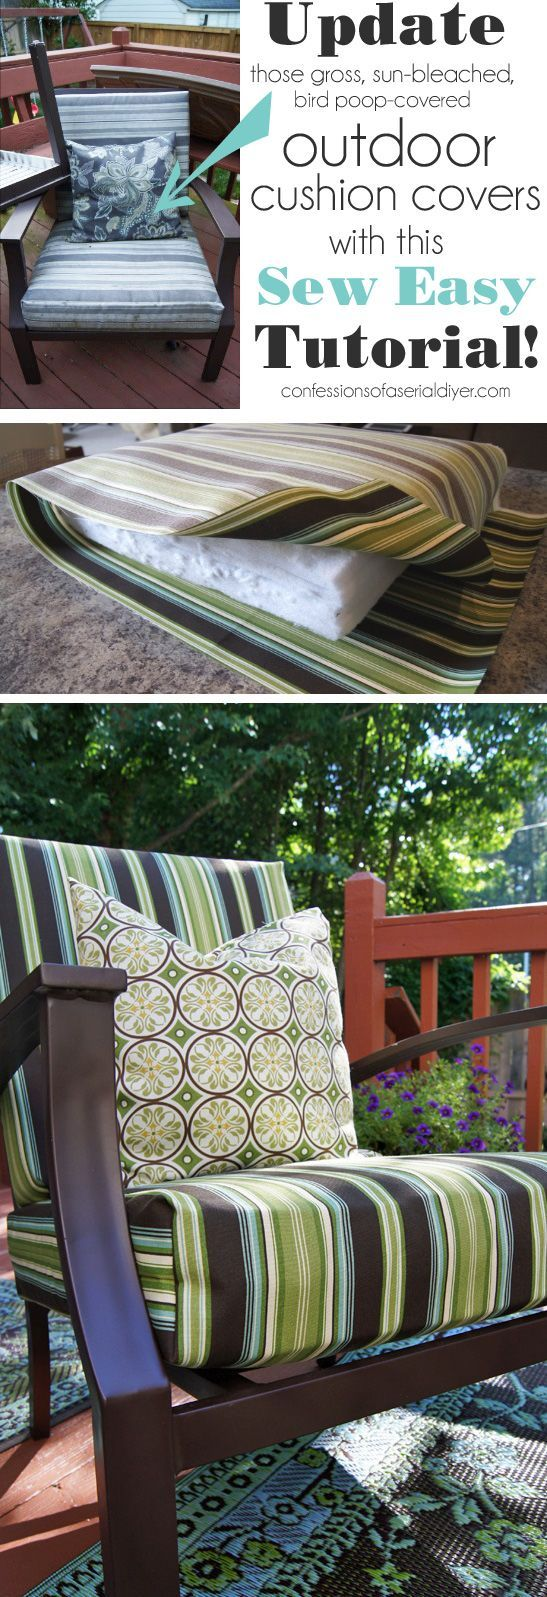 Update Your Outdoor Cushion Covers With This SEW SUPER EASY Cushion Cover  Tutorial From Confessions Of